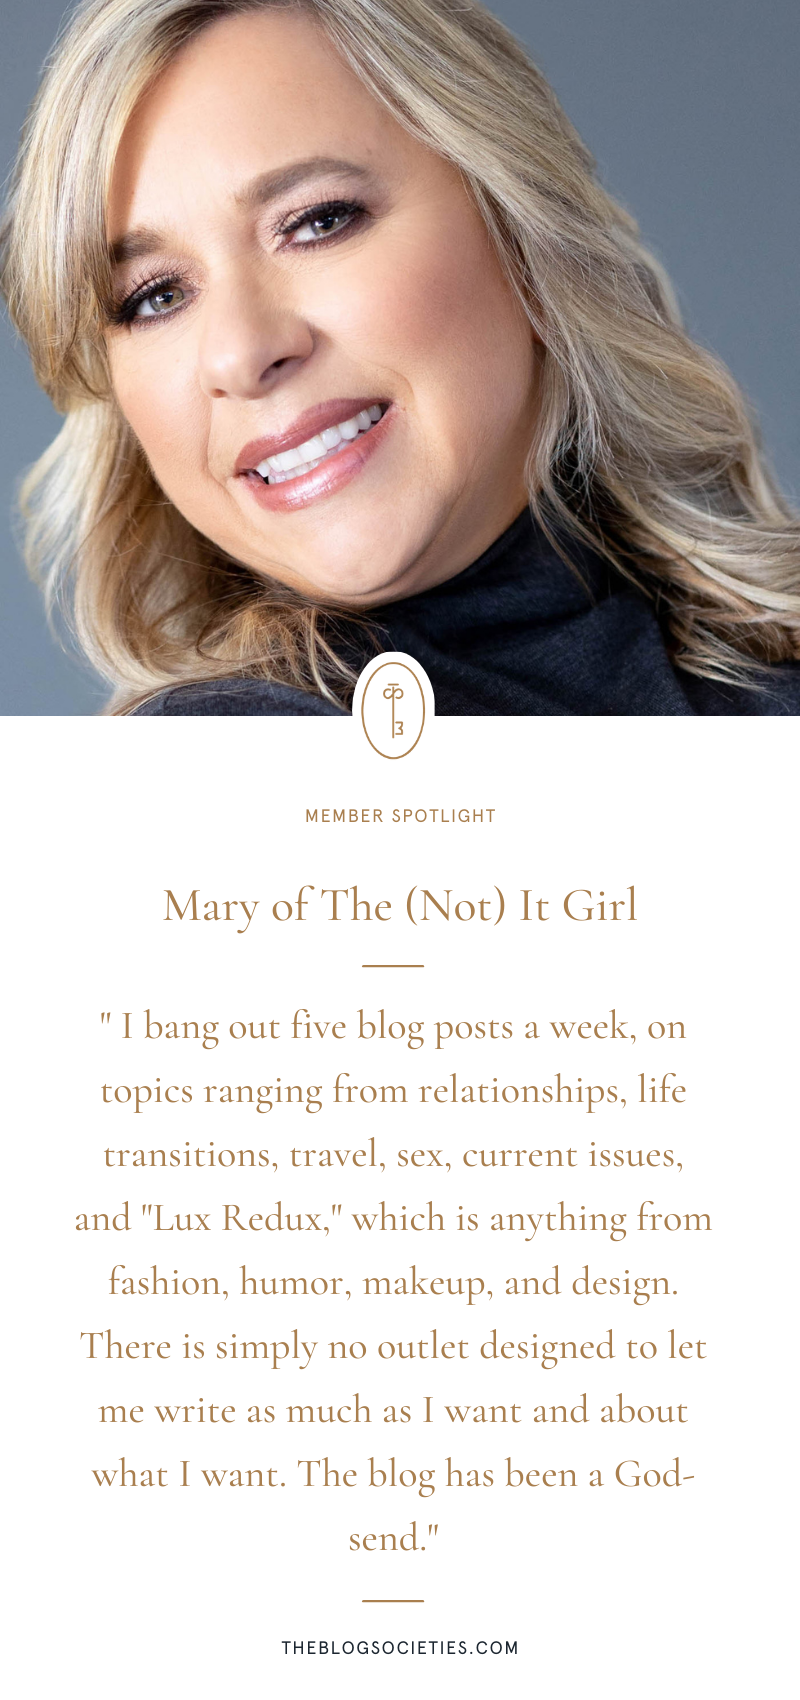 Mary of The (Not) It Girl